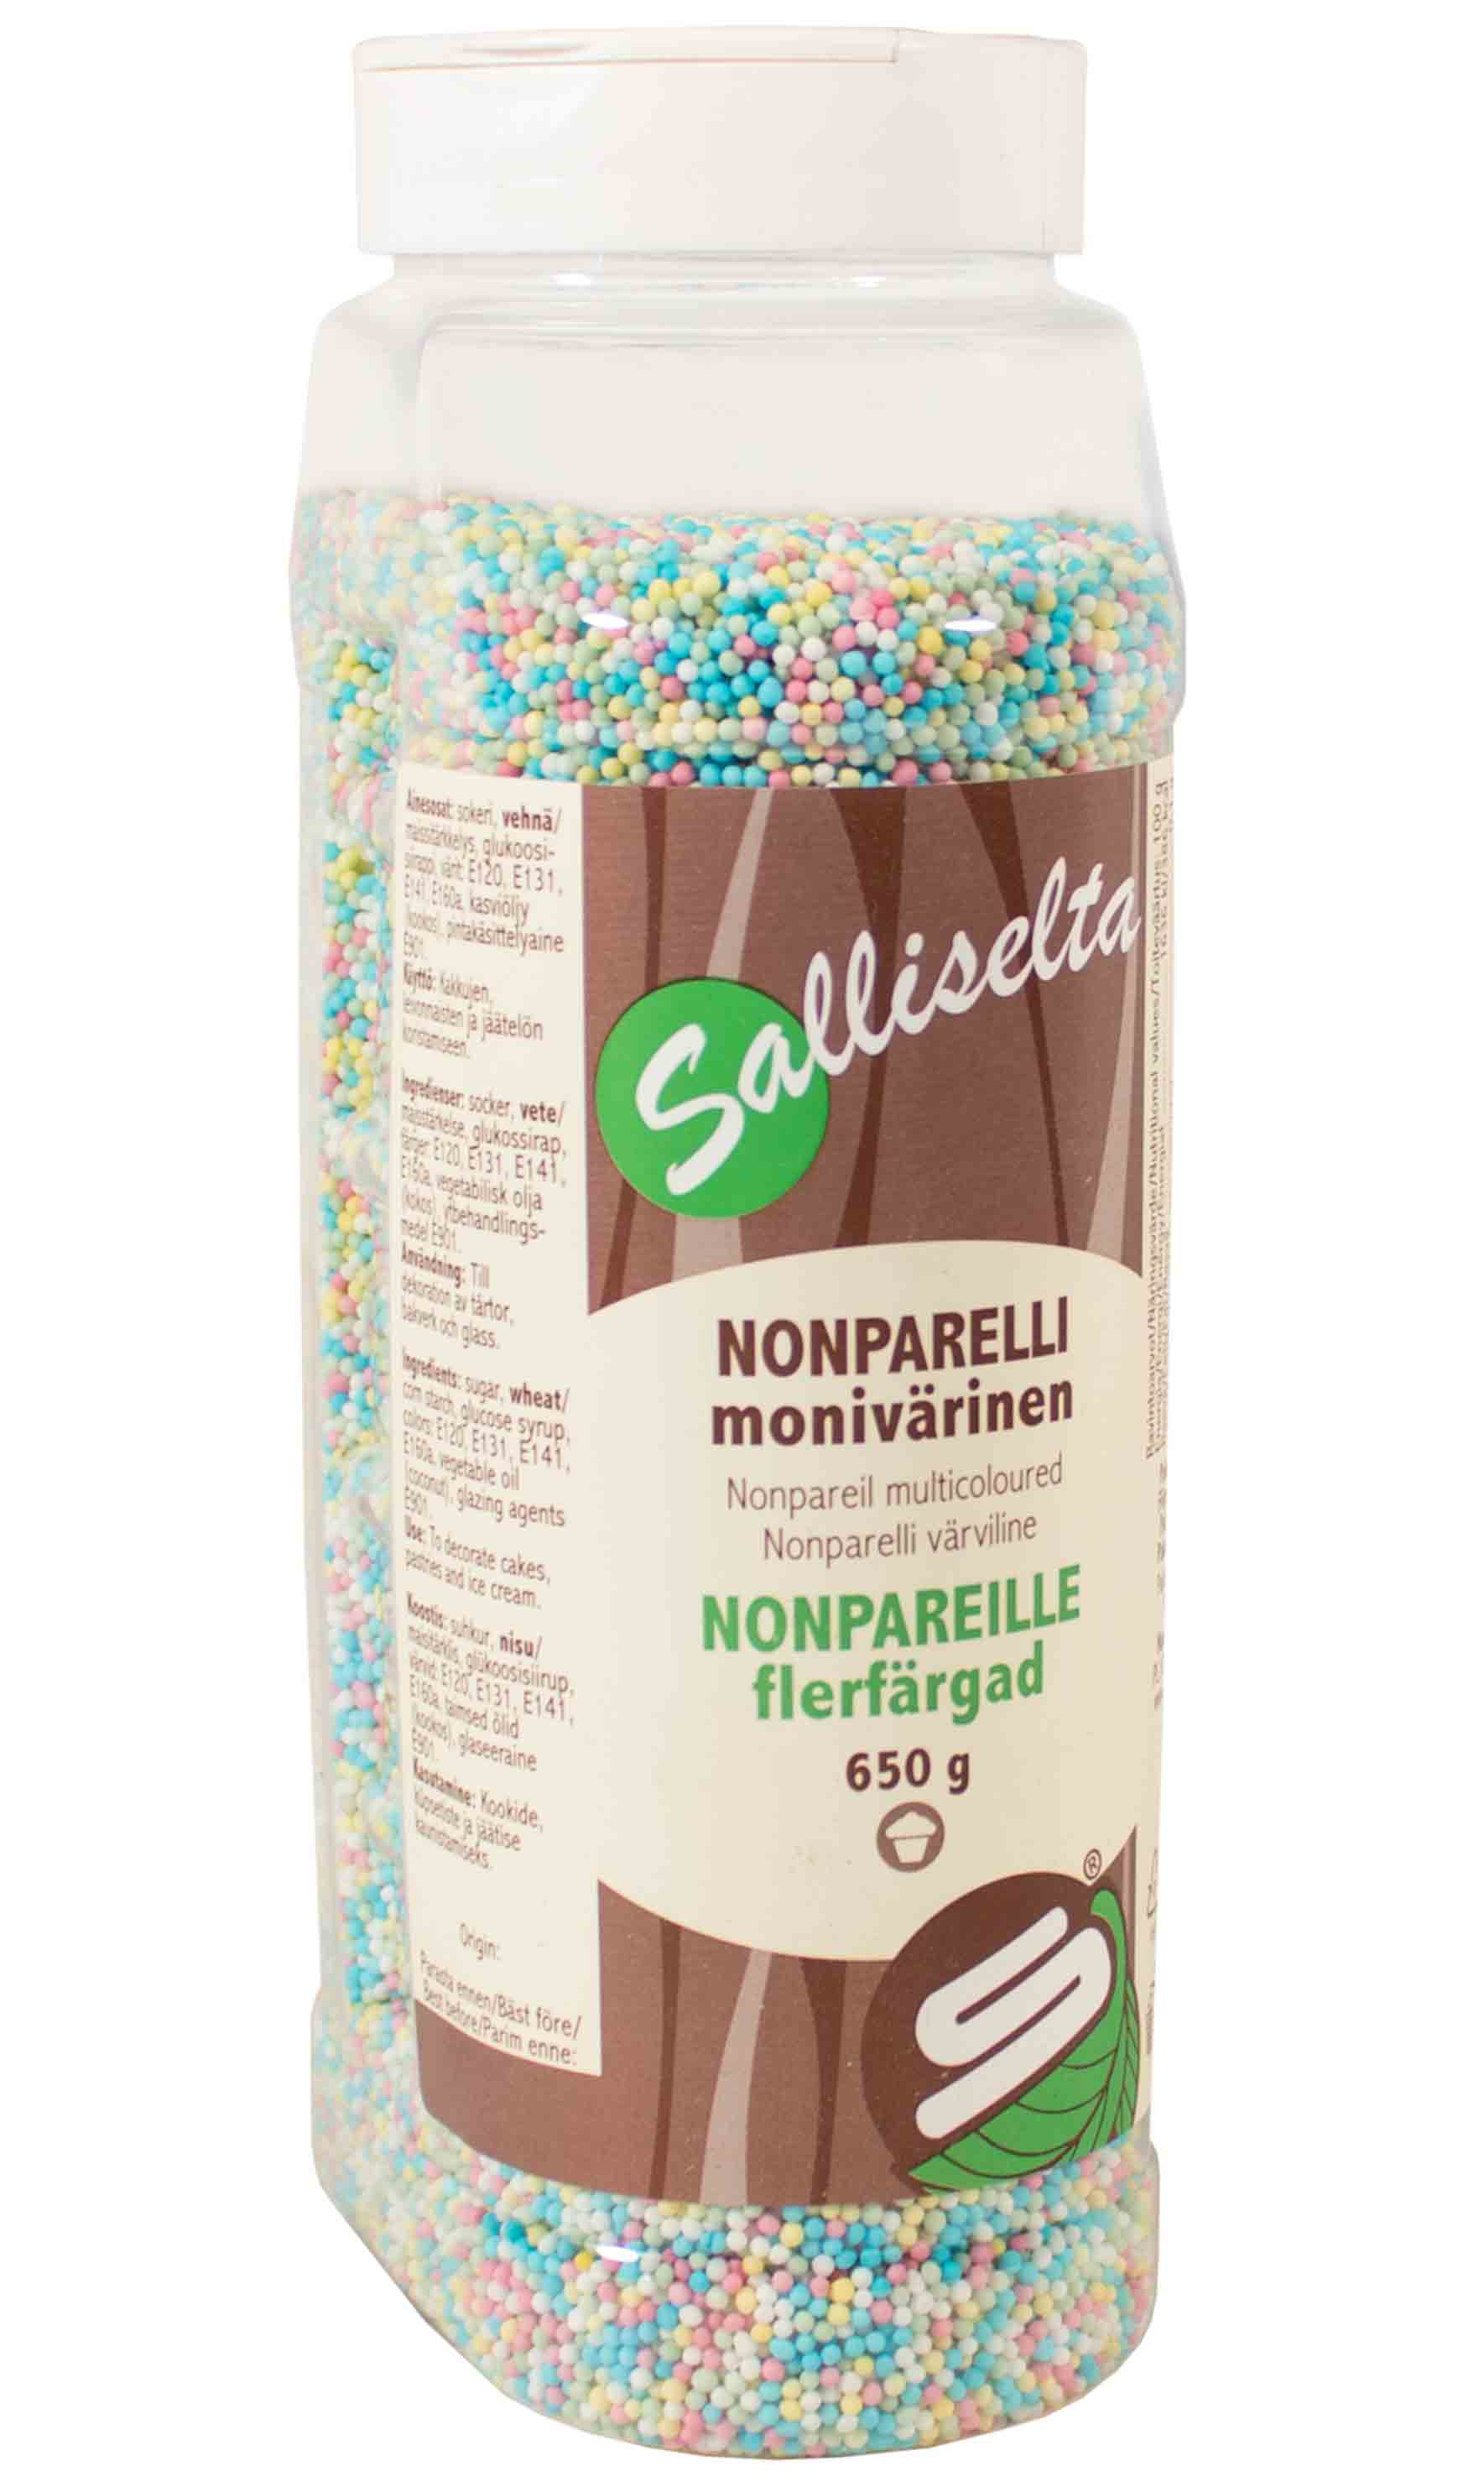 Nonpareils multicoloured 650 g